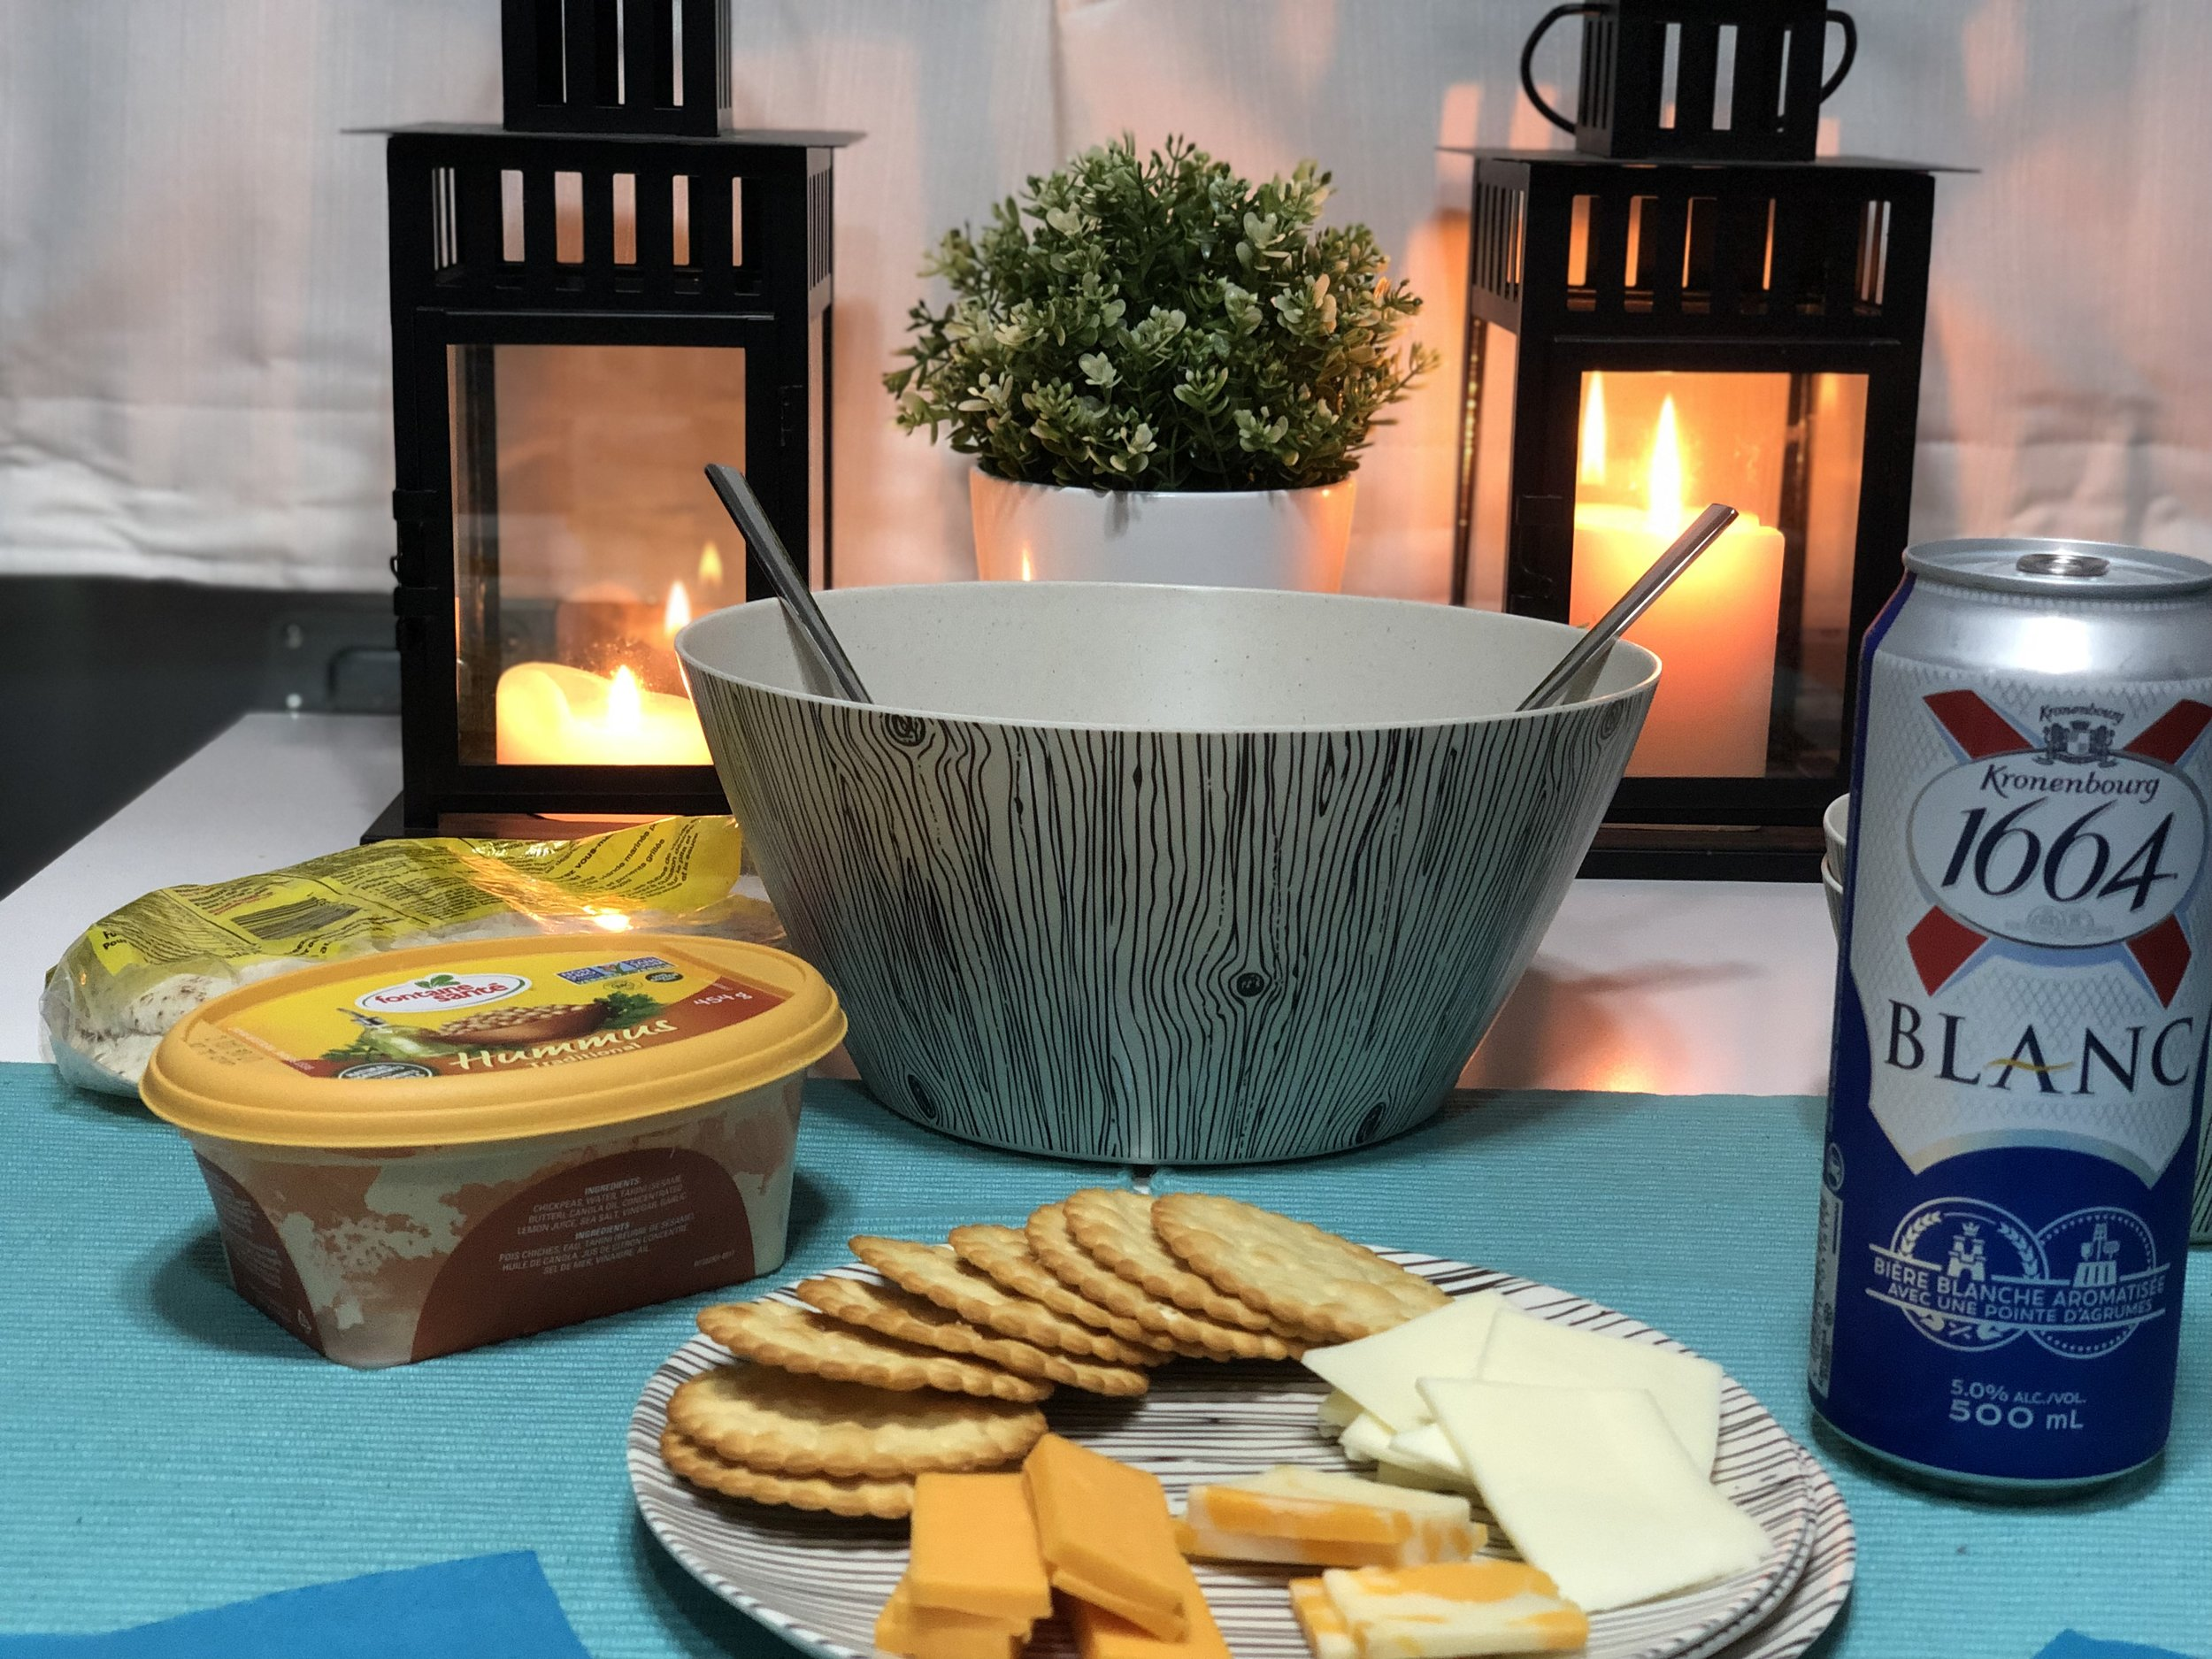 snacks, salad and beer… A great camping dinner!